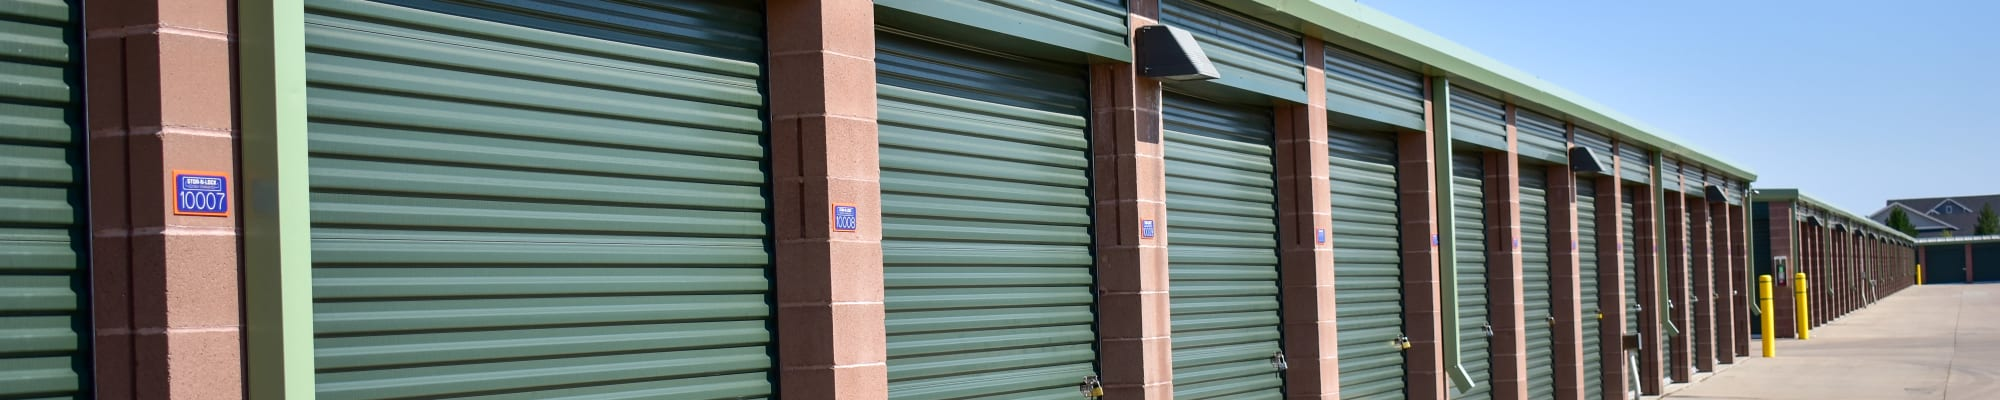 Contact us at STOR-N-LOCK Self Storage in Fort Collins, Colorado